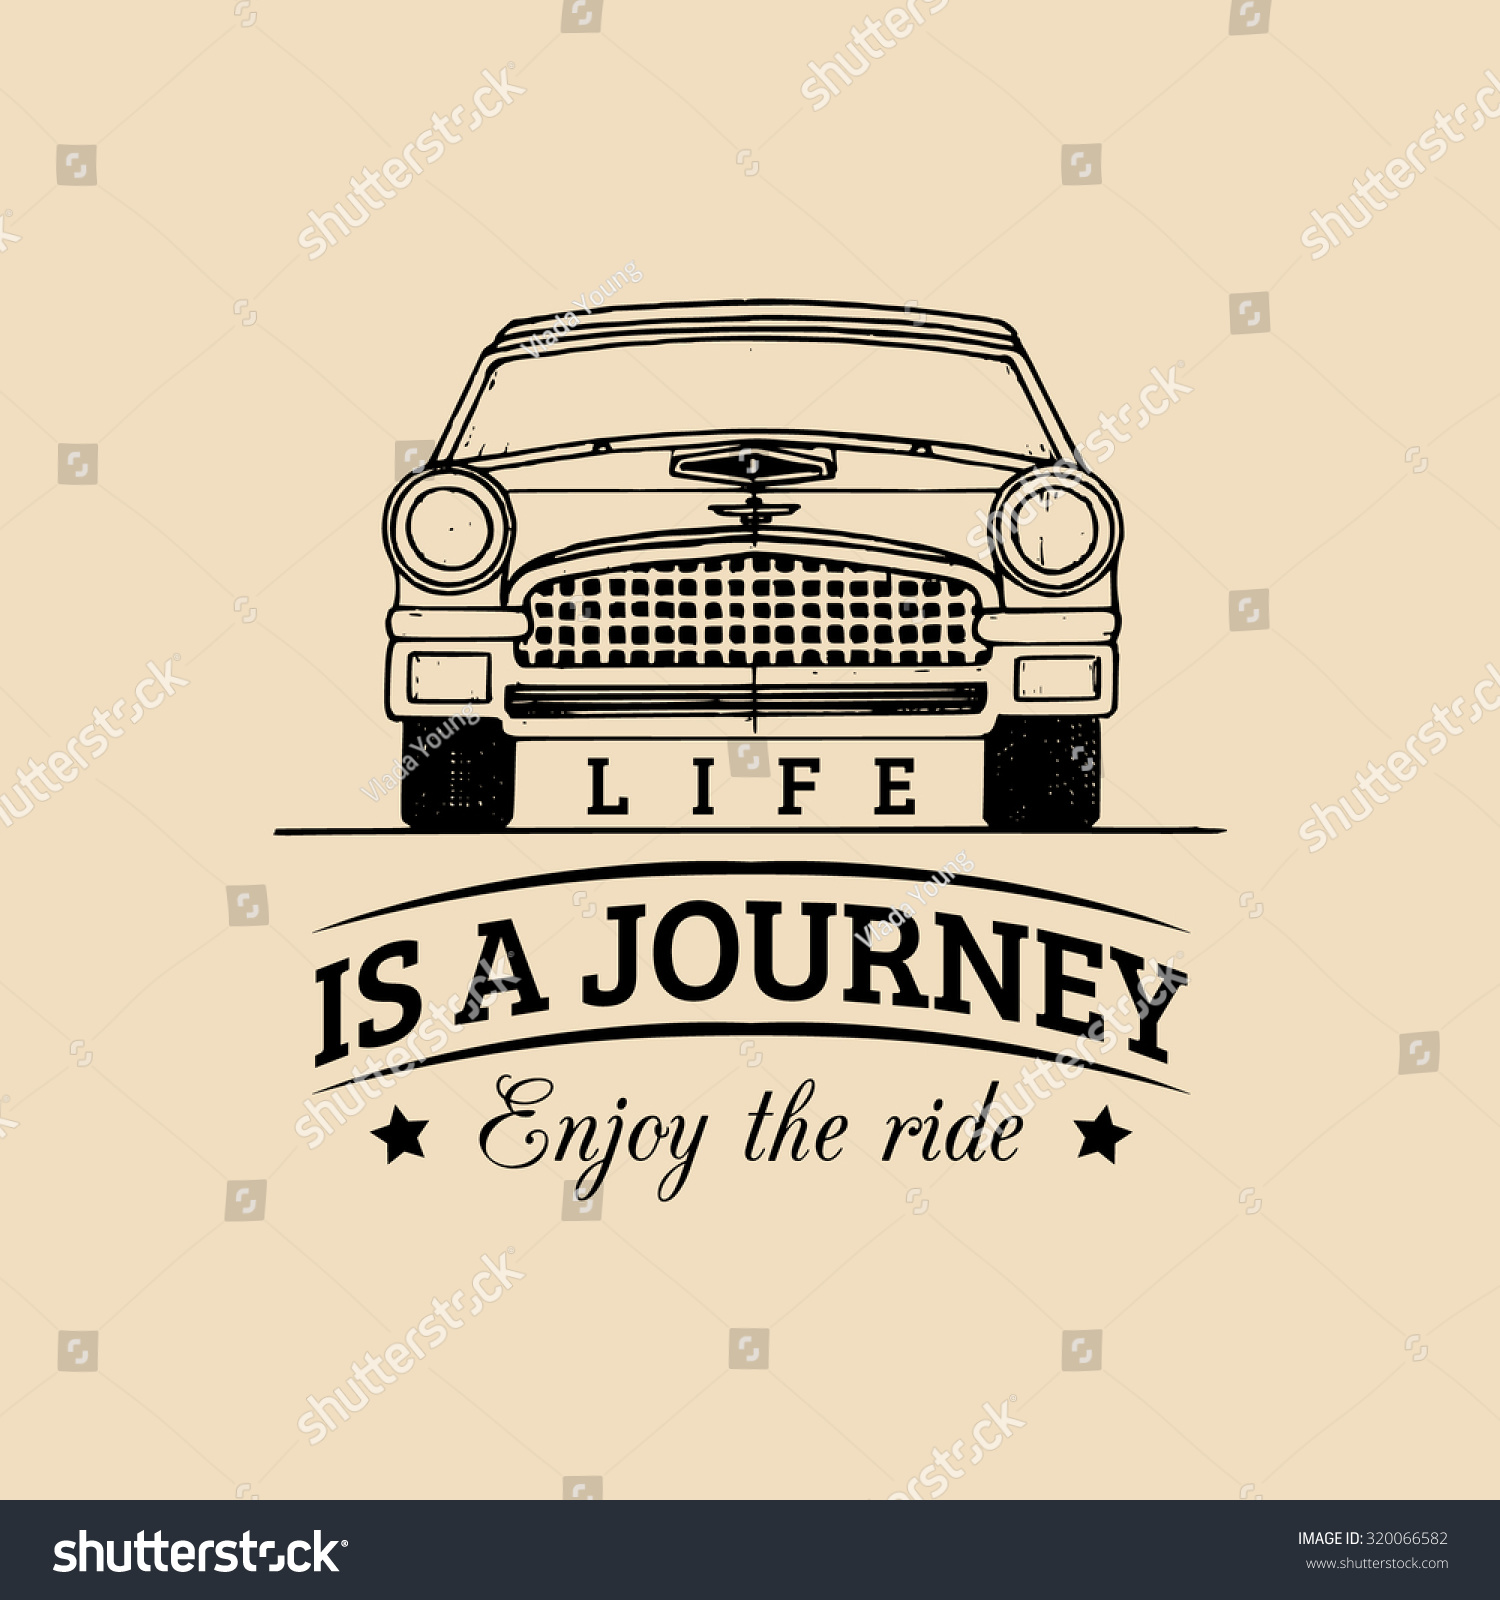 Motivational Inspirational Quotes: Life Journey Enjoy Ride Motivational Quote Vectores En